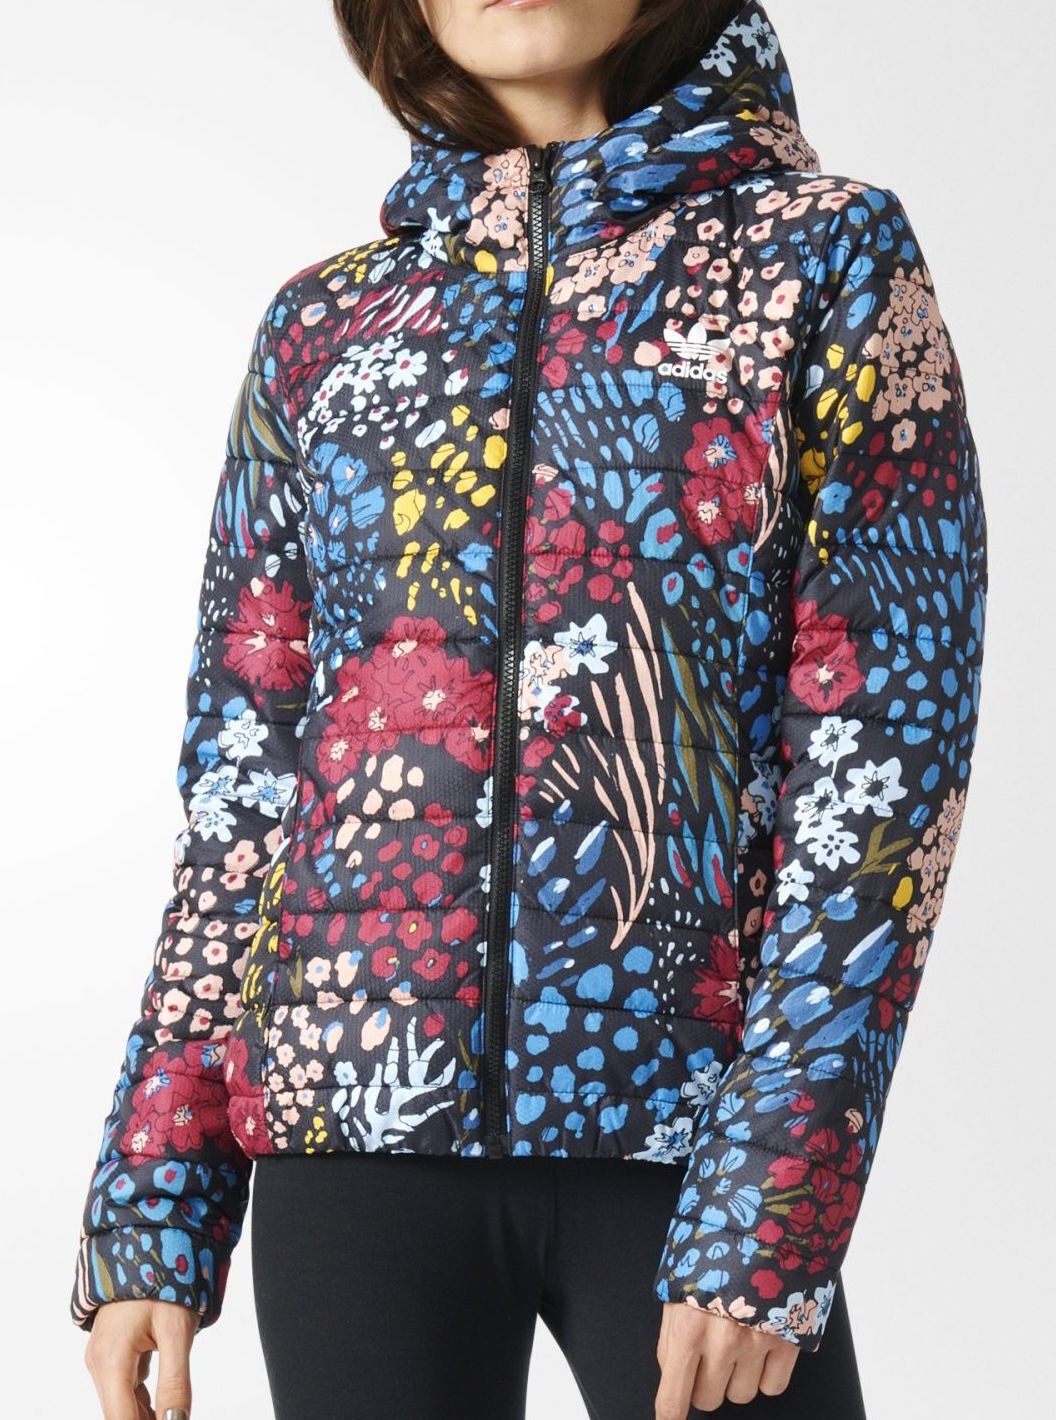 Adidas X Women's Slim Floral Print Jacket, AY4746, Multicolored, US Size XS